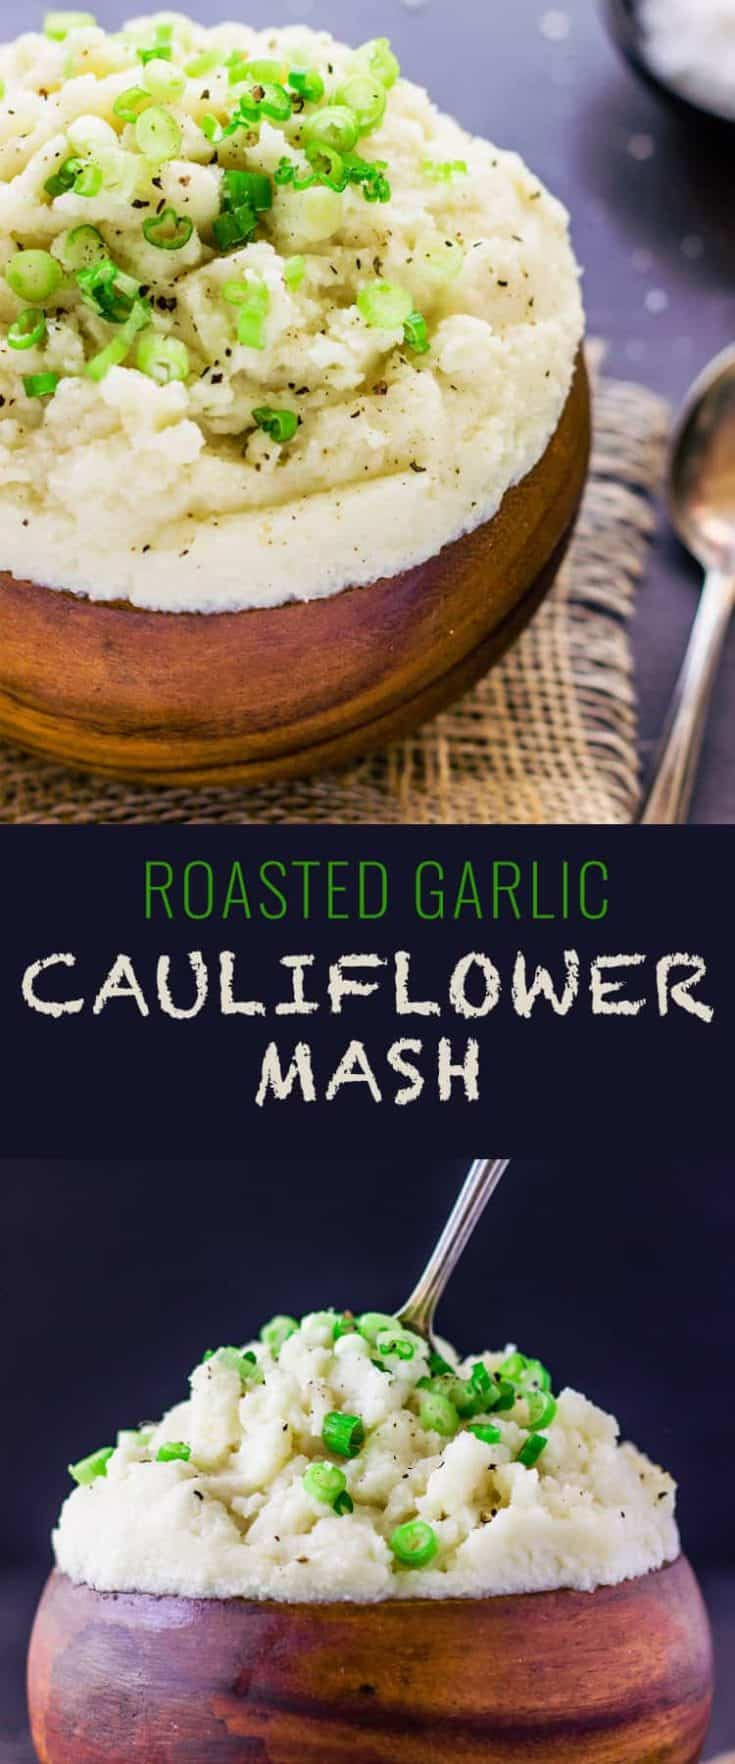 This Roasted Garlic Cauliflower Mash is a healthier, yet very tasty alternative to traditional mashed potatoes. A delicious low-carb side-dish ready in under 20 minutes #cauliflowermashedpotatoes #cauliflowerrecipe #sidedish #healthyside